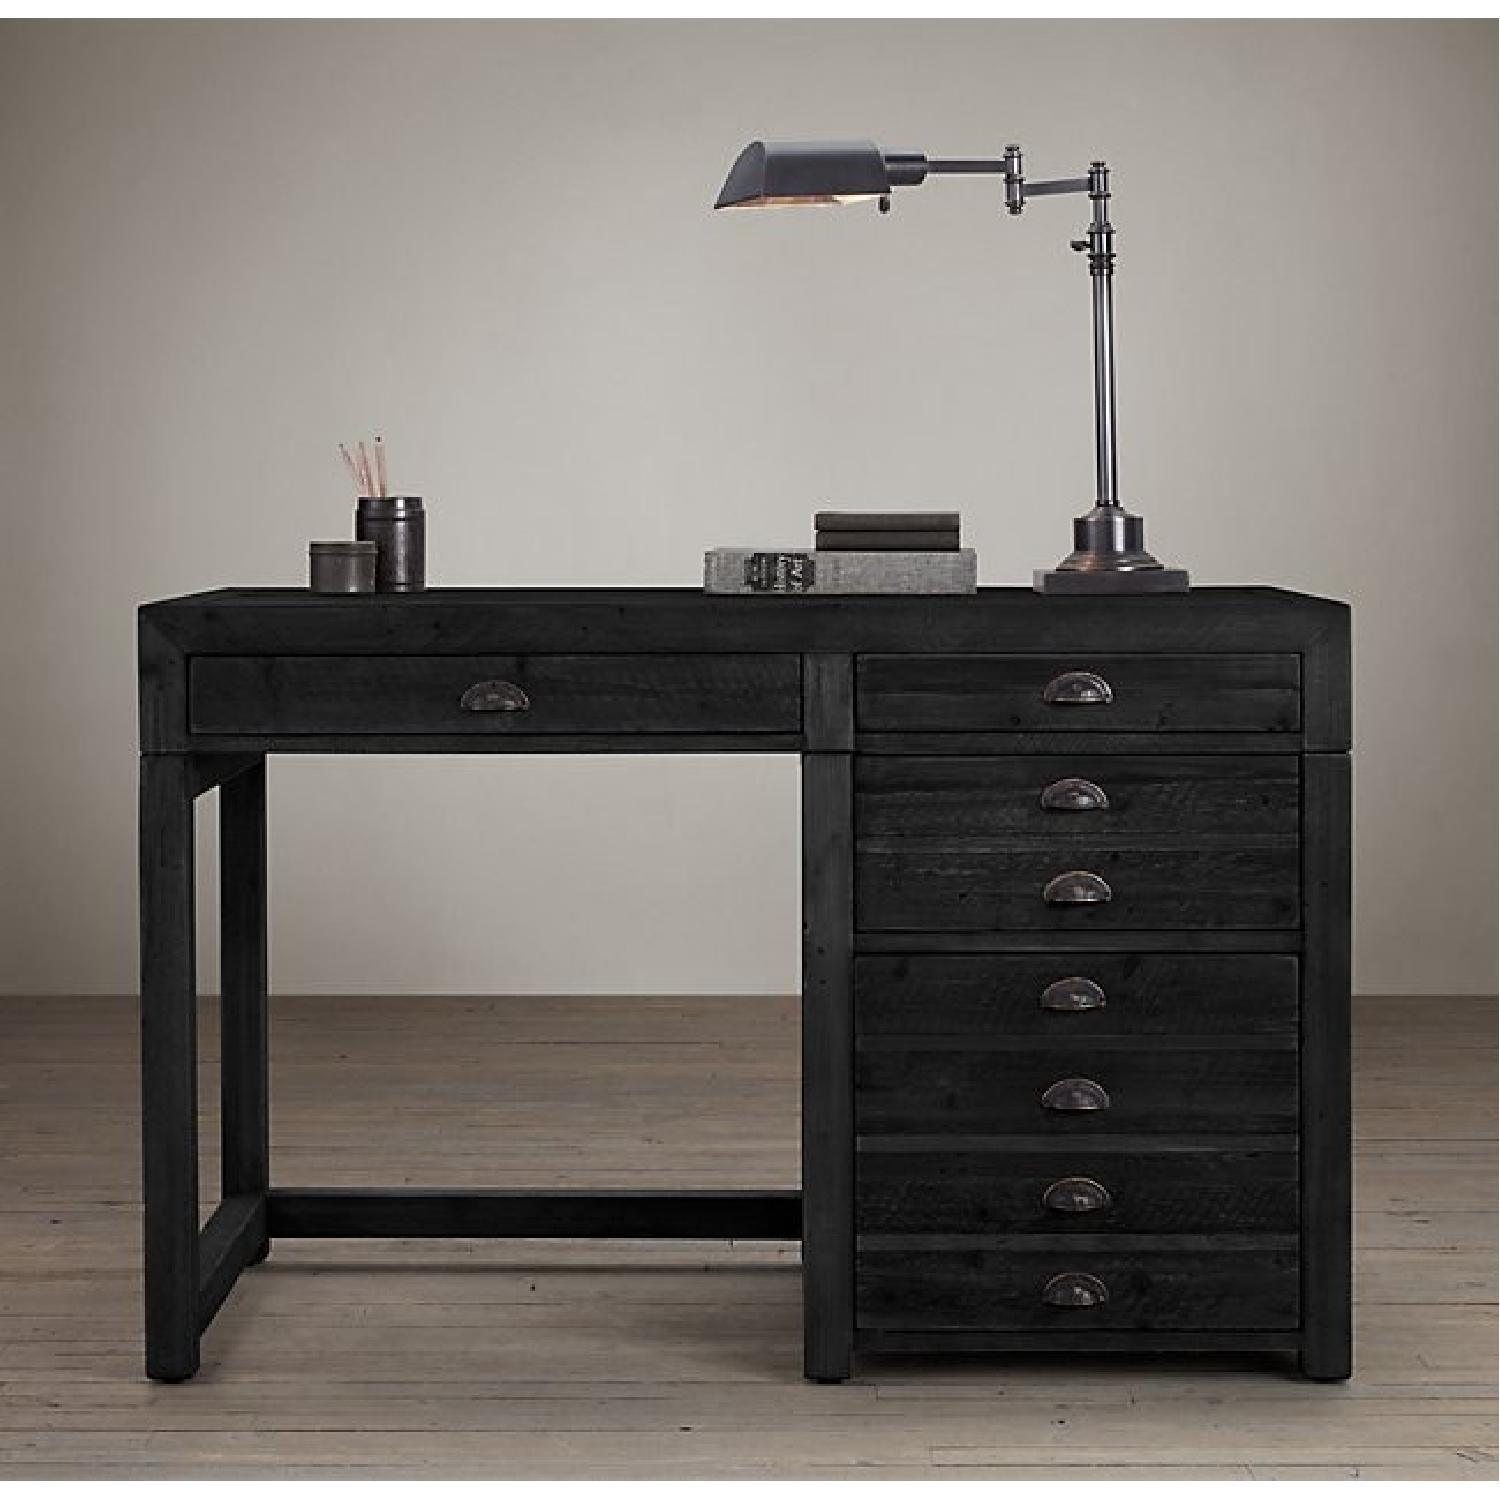 Restoration Hardware Printmaker's Wooden Desk-5